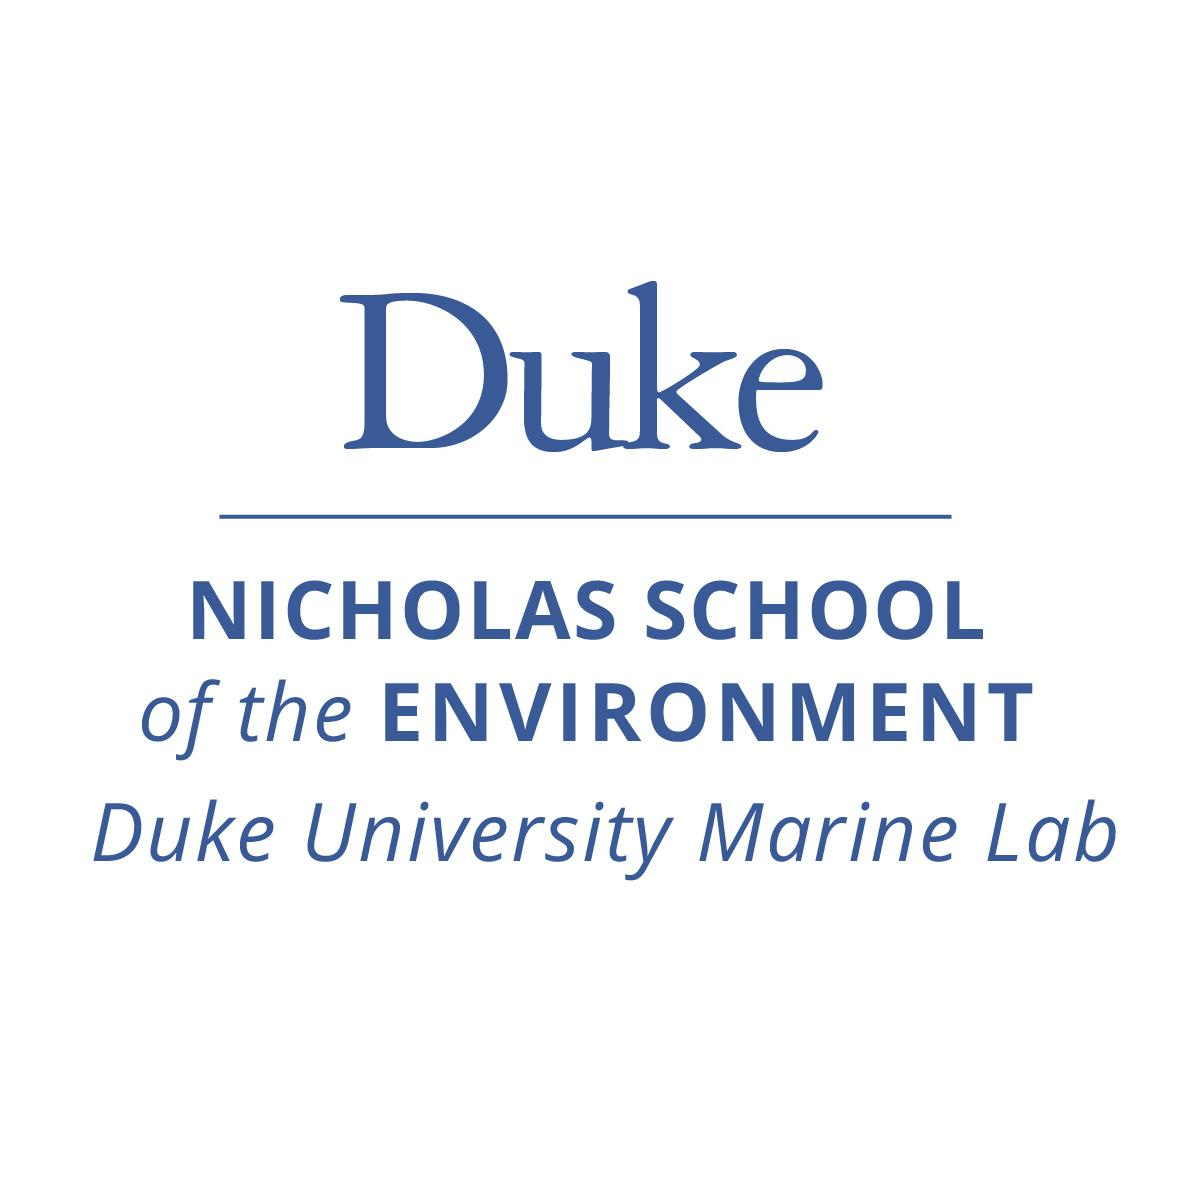 Duke Nicholas School of the Environment Marine Lab